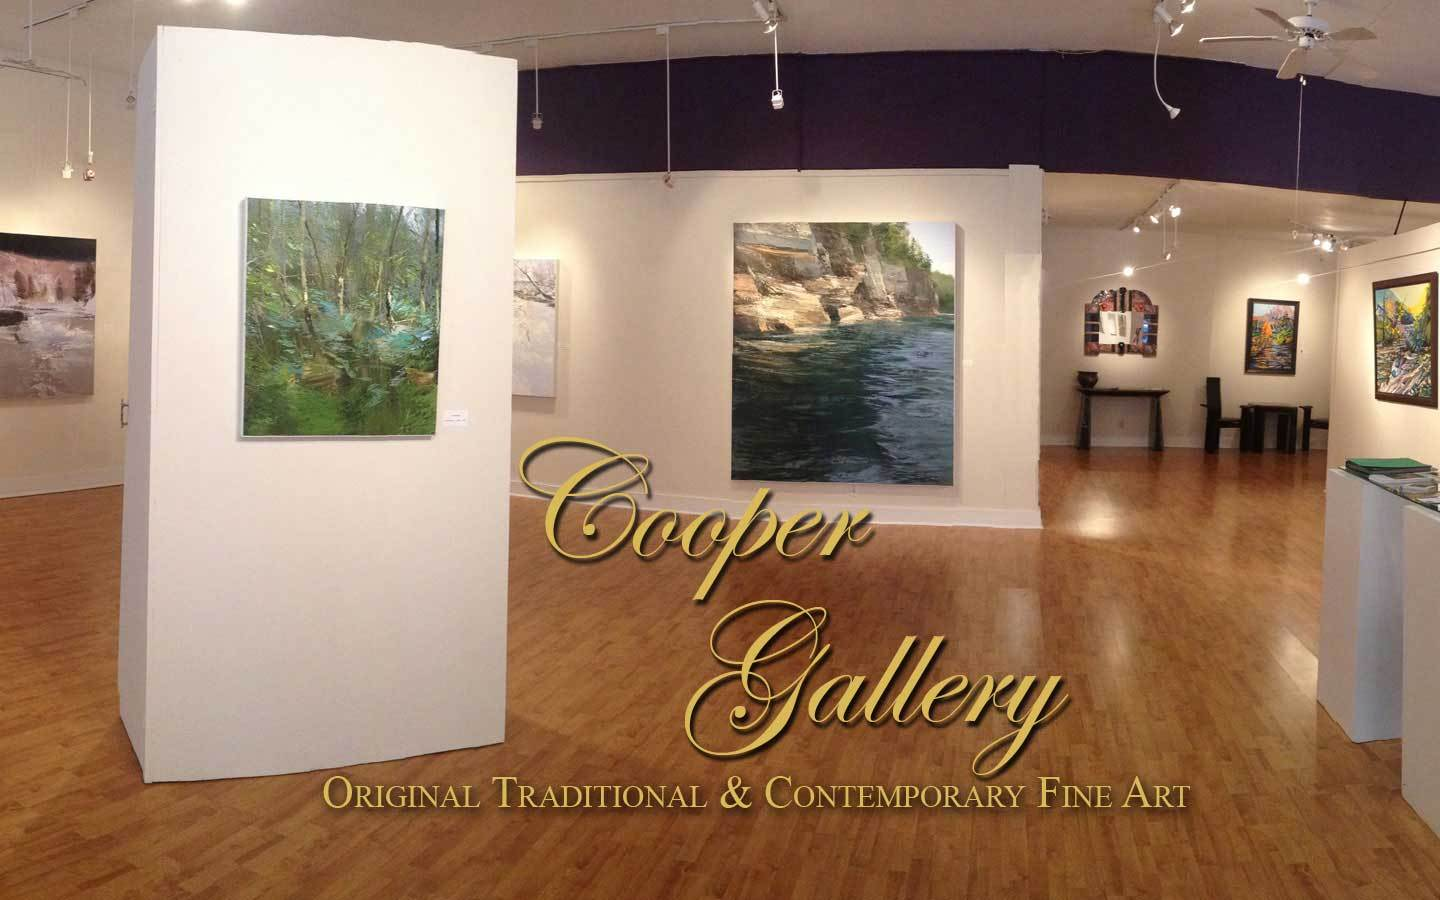 Cooper Gallery presents Lynn Boggess Art Exhibit June 1, 2019